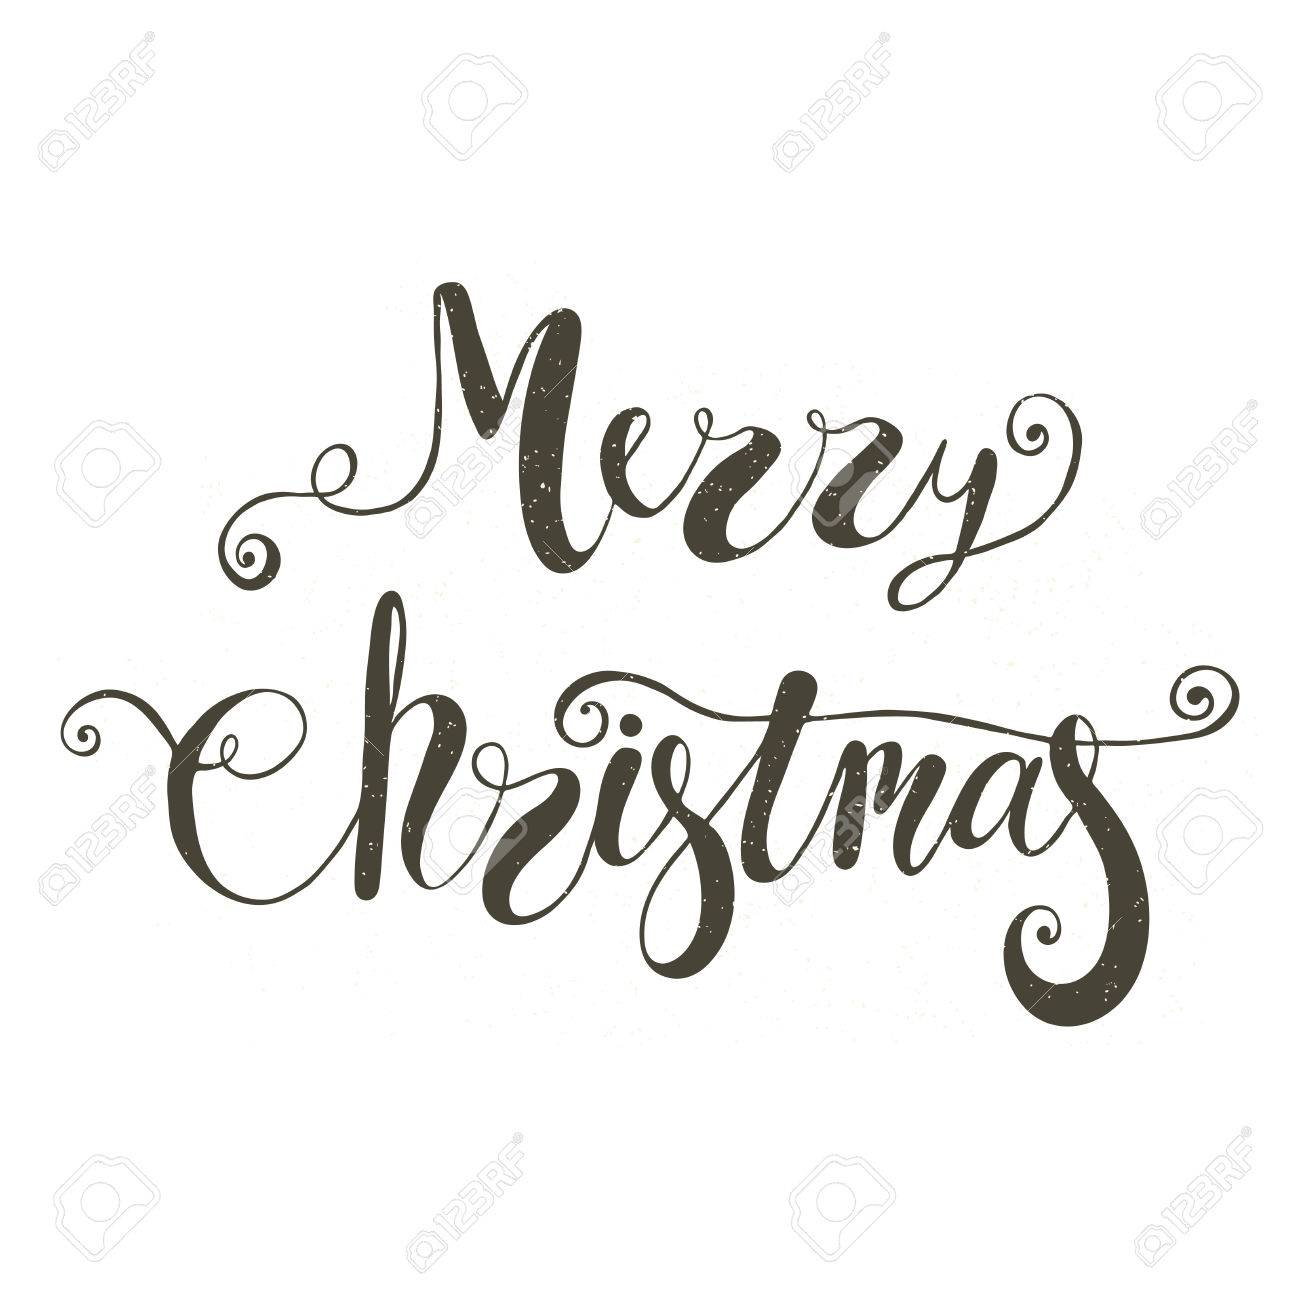 Merry Christmas Lettering In Black On White Background Royalty Free ...